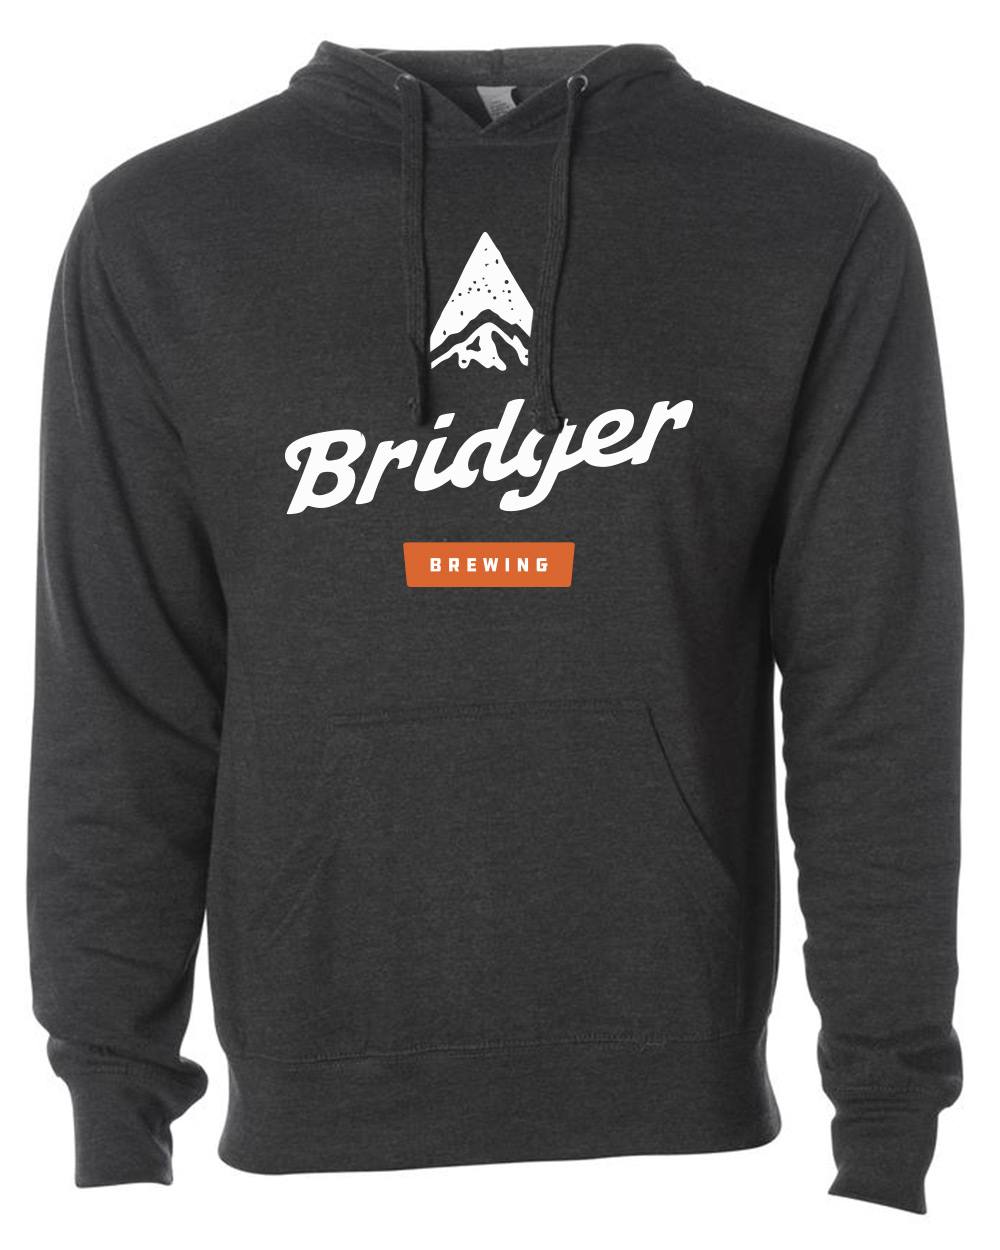 An 80/20 cotton/polyester blend fleece with 100% cotton face, our unisex Bridger logo pullover hoodie is perfect to throw in your pack or keep in the truck for an extra layer of warmth. It features the primary Bridger Brewing logo on the front.